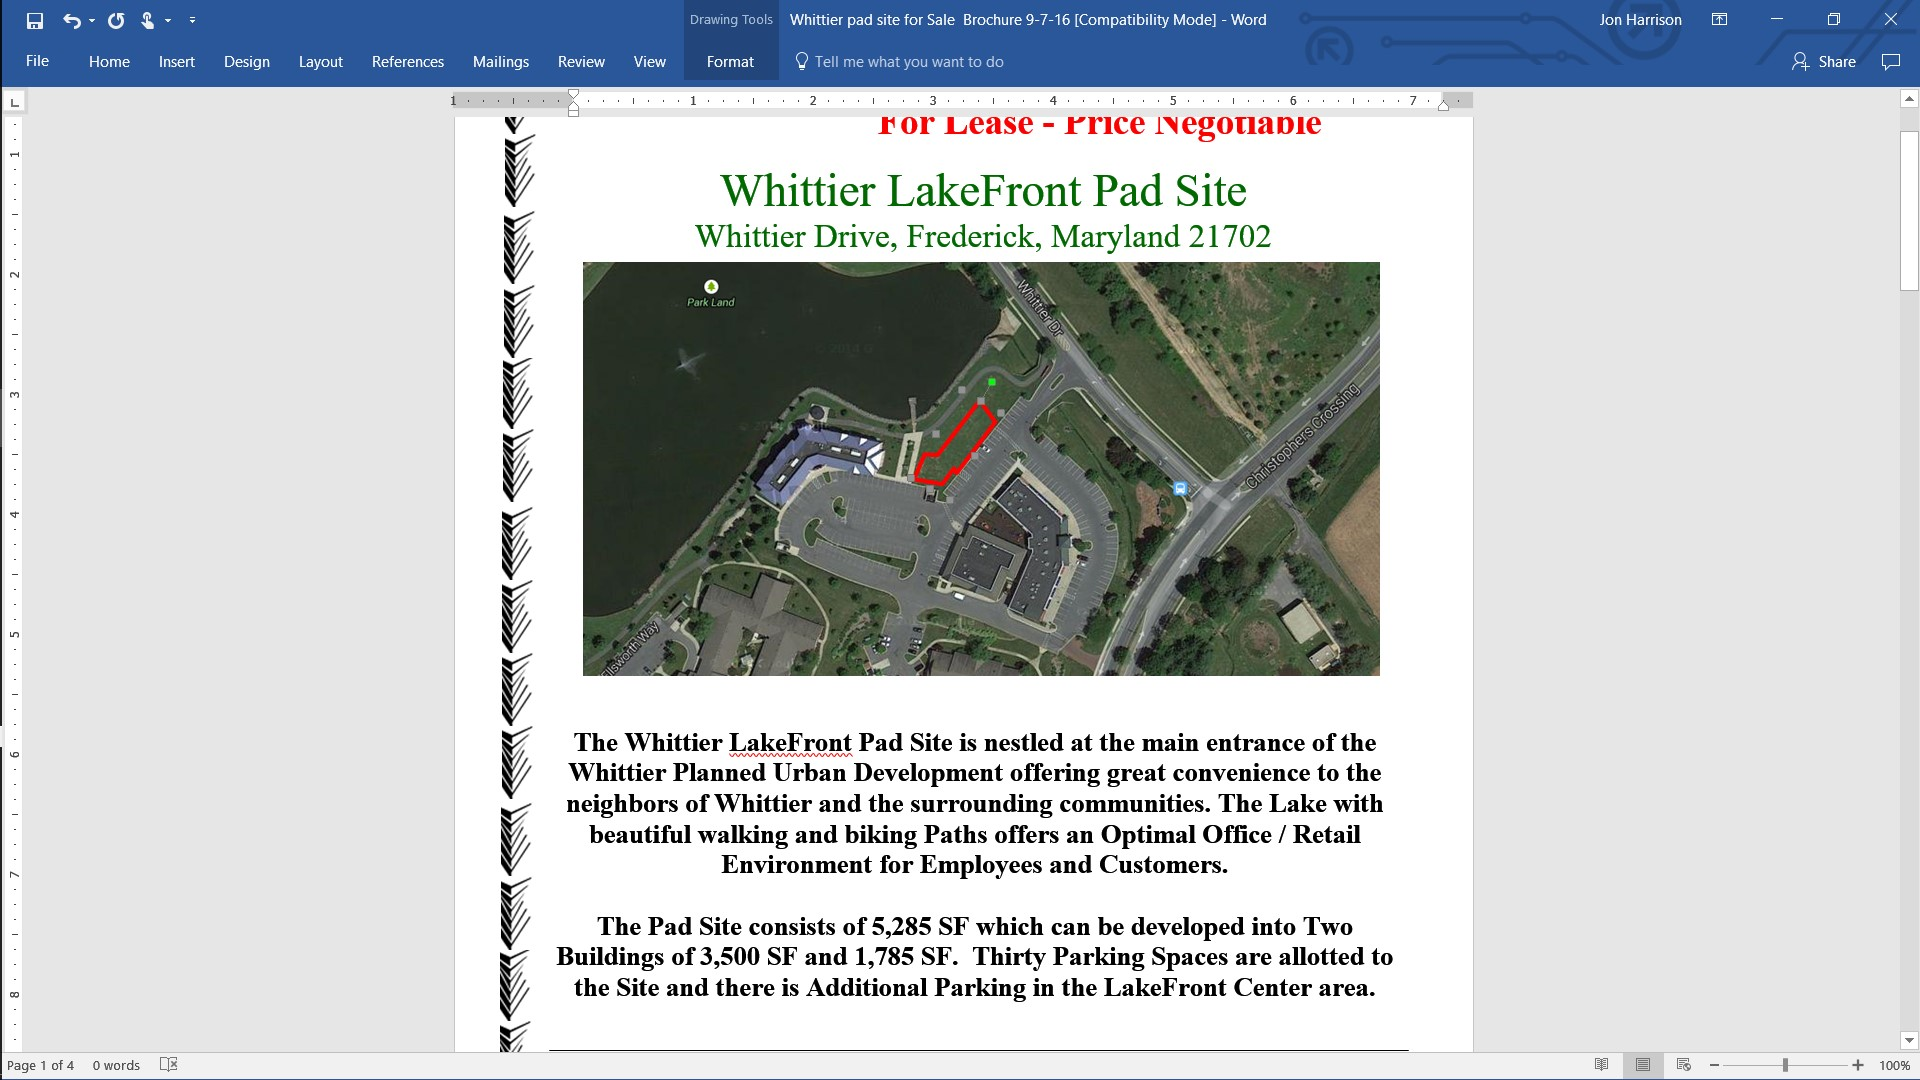 whittier pad site